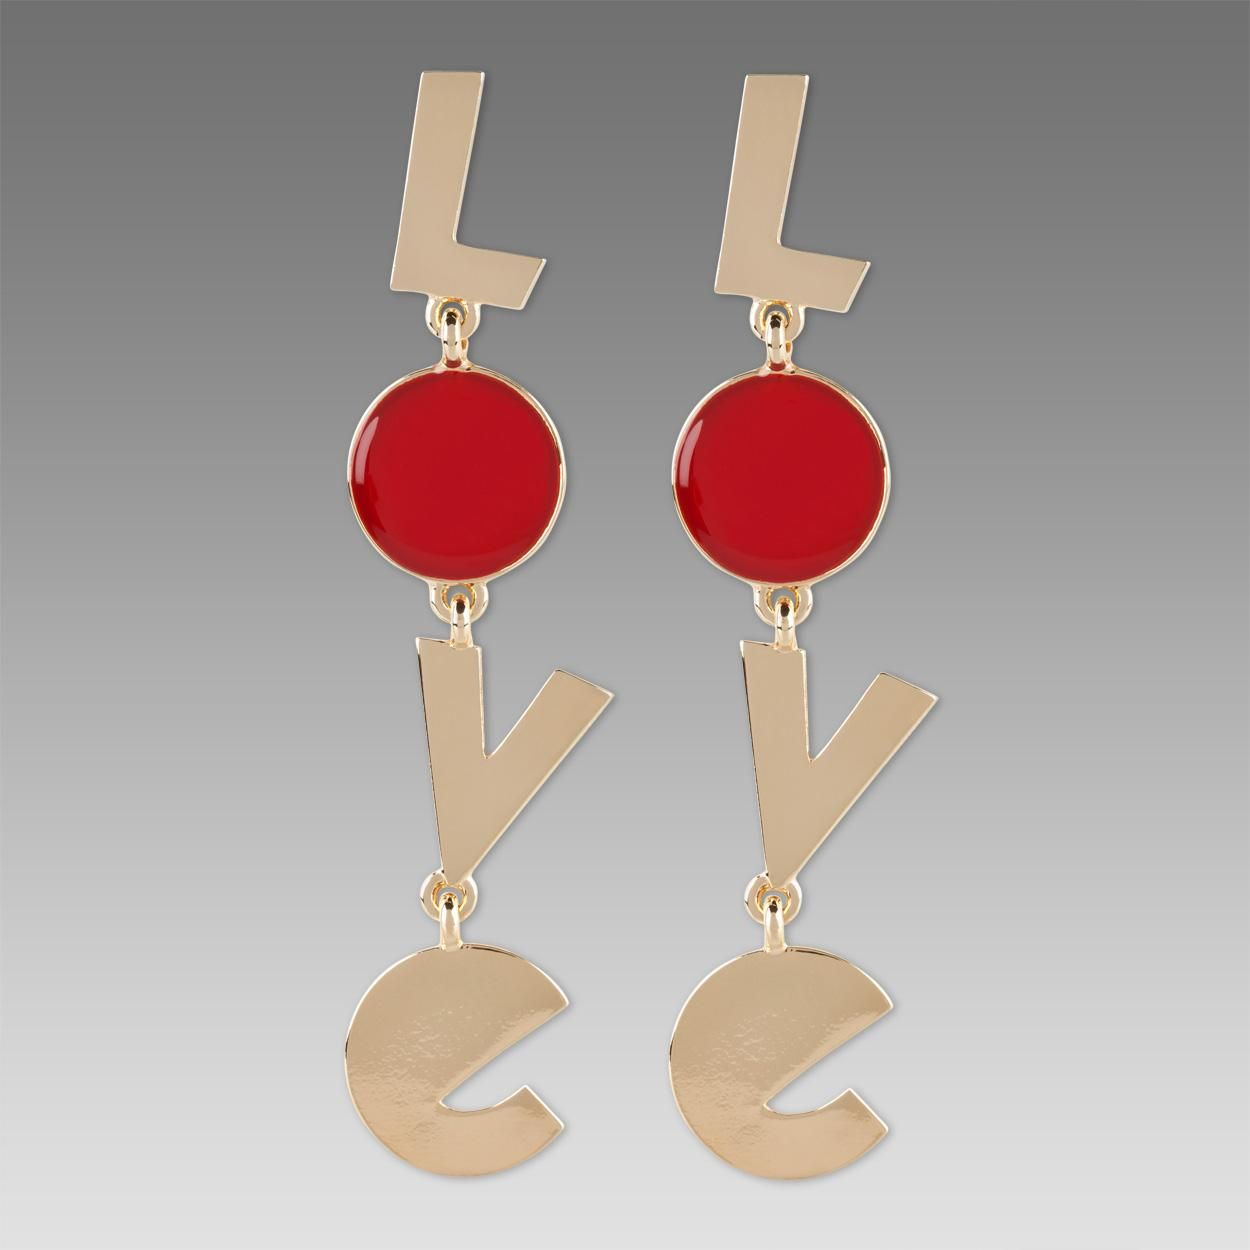 Paul Smith Jewellery Gold Love Earrings